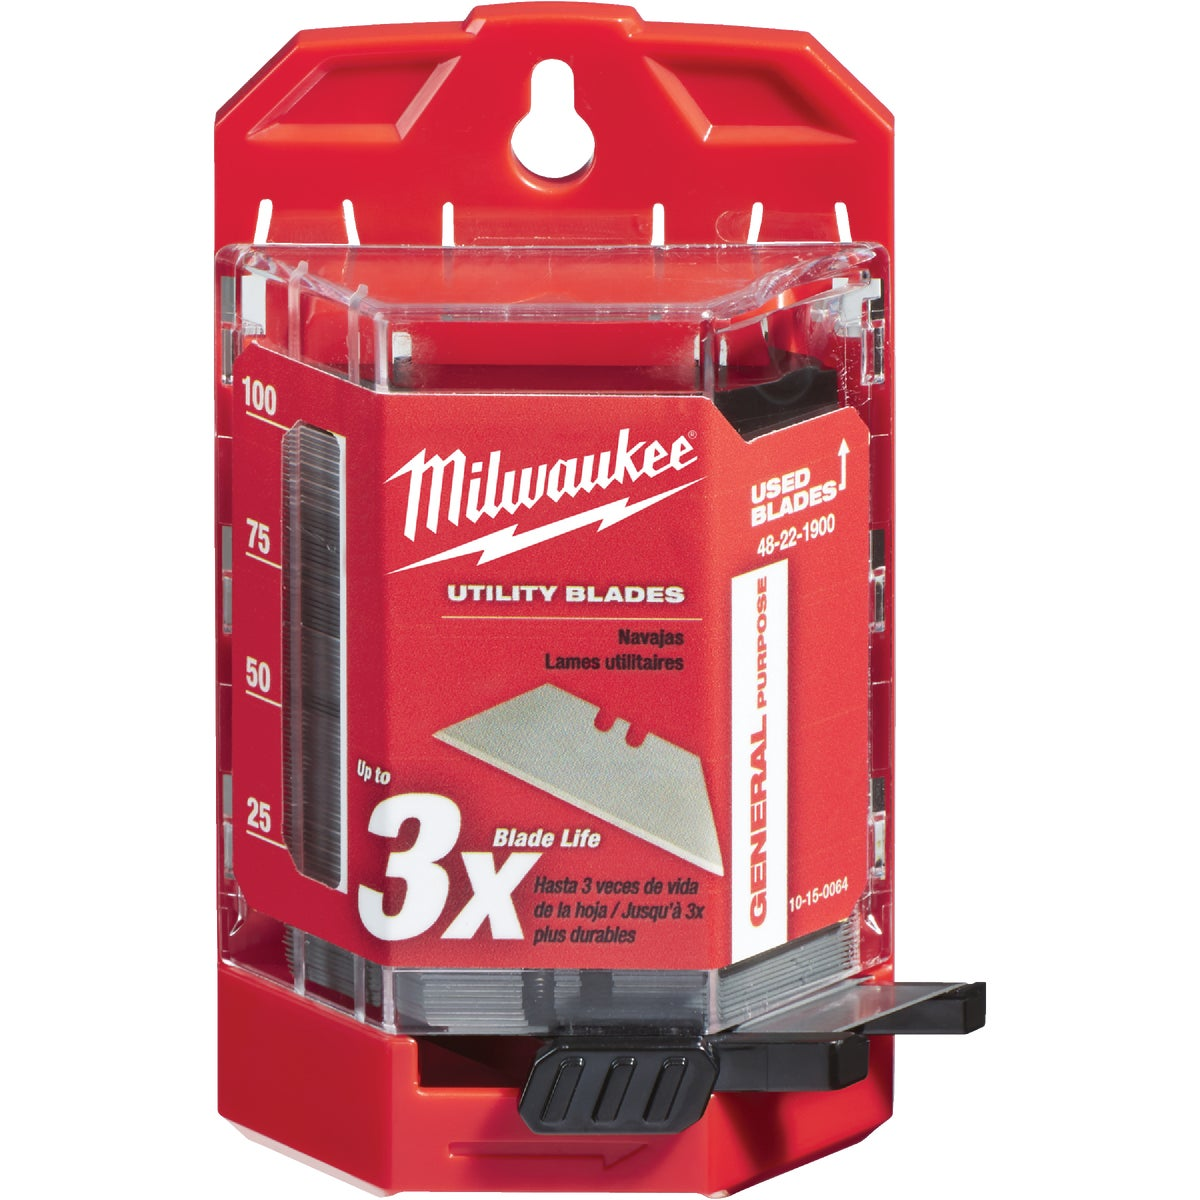 100PC UTILITY BLADE - 48-22-1900 by Milwaukee Elec Tool